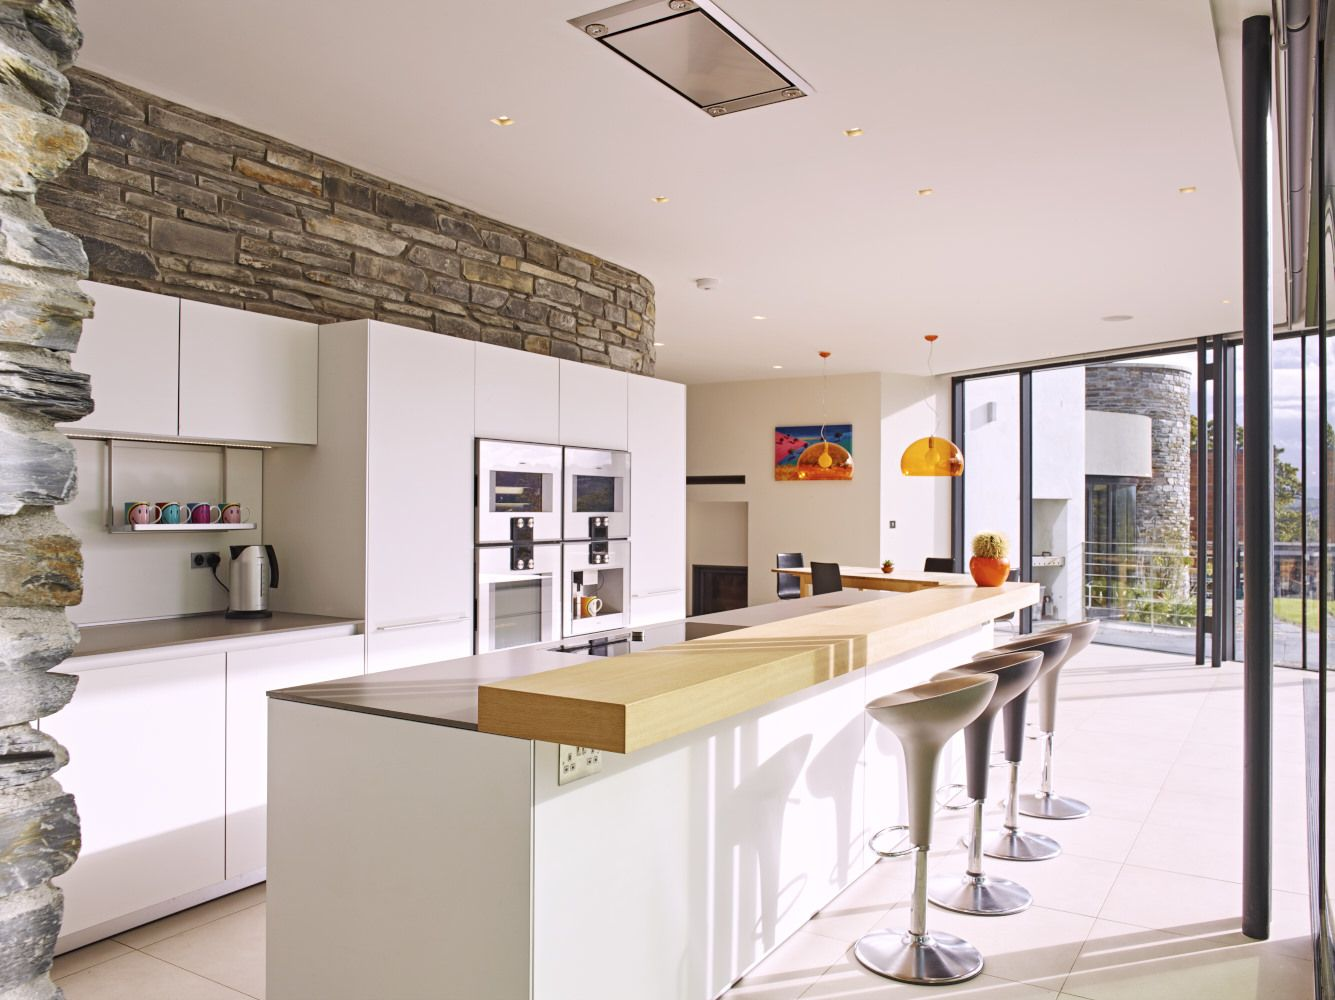 Exeter I Sapphire Spaces Contemporary Kitchen White Laminate Kitchen White kitchen breakfast bar